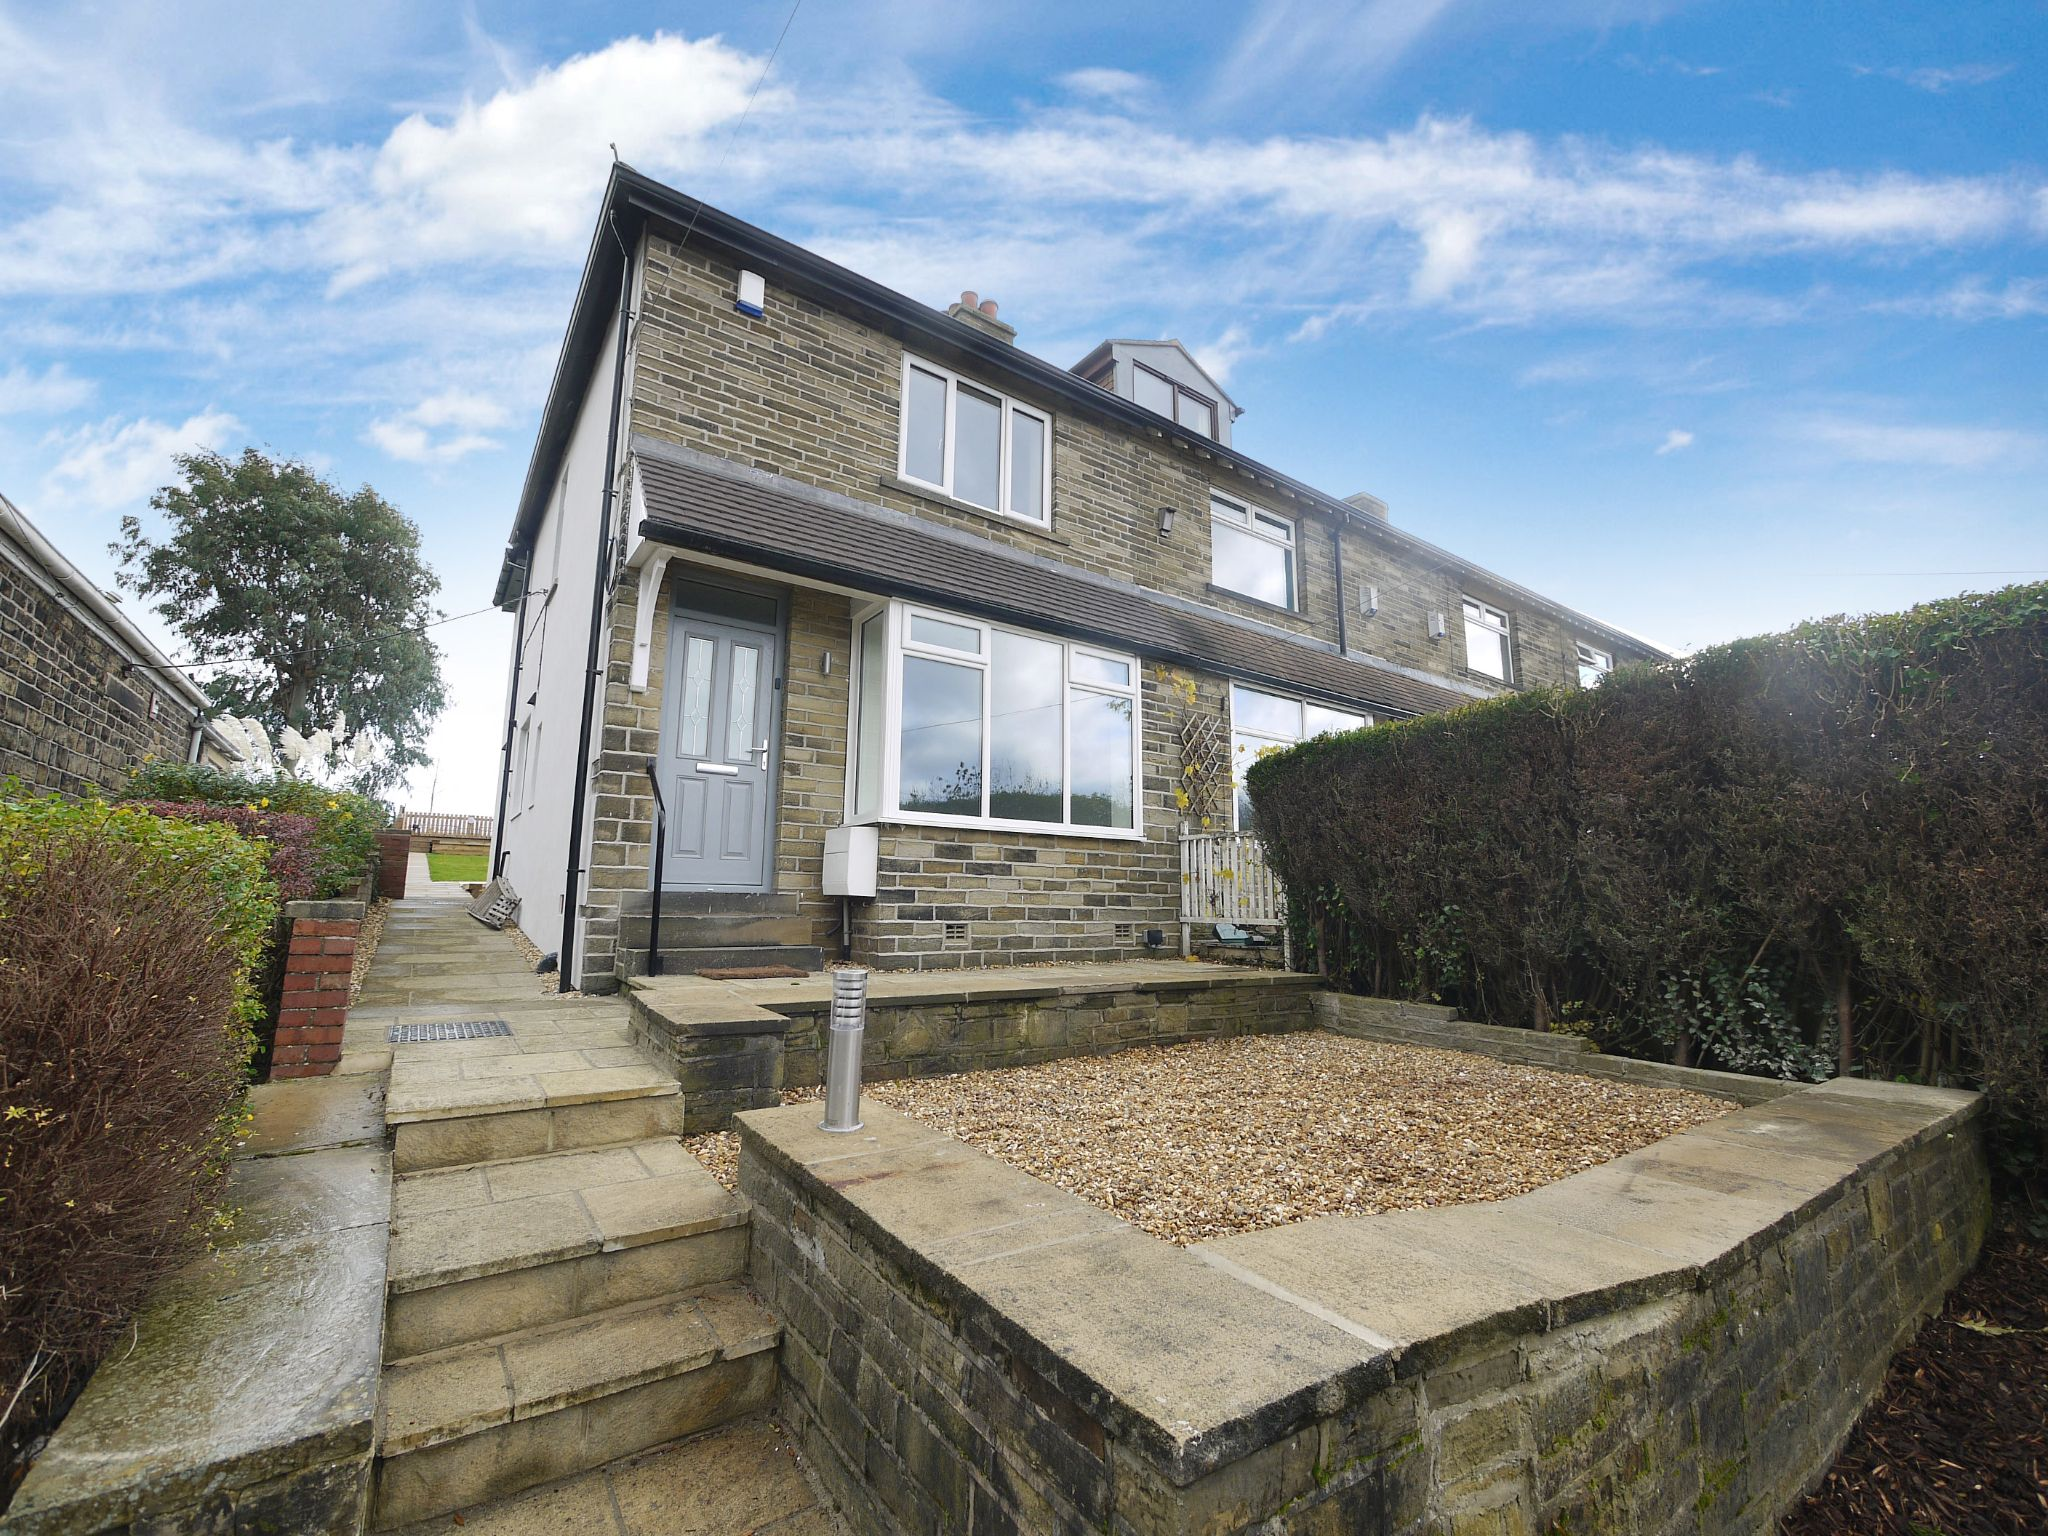 3 bedroom end terraced house For Sale in Brighouse - Main.